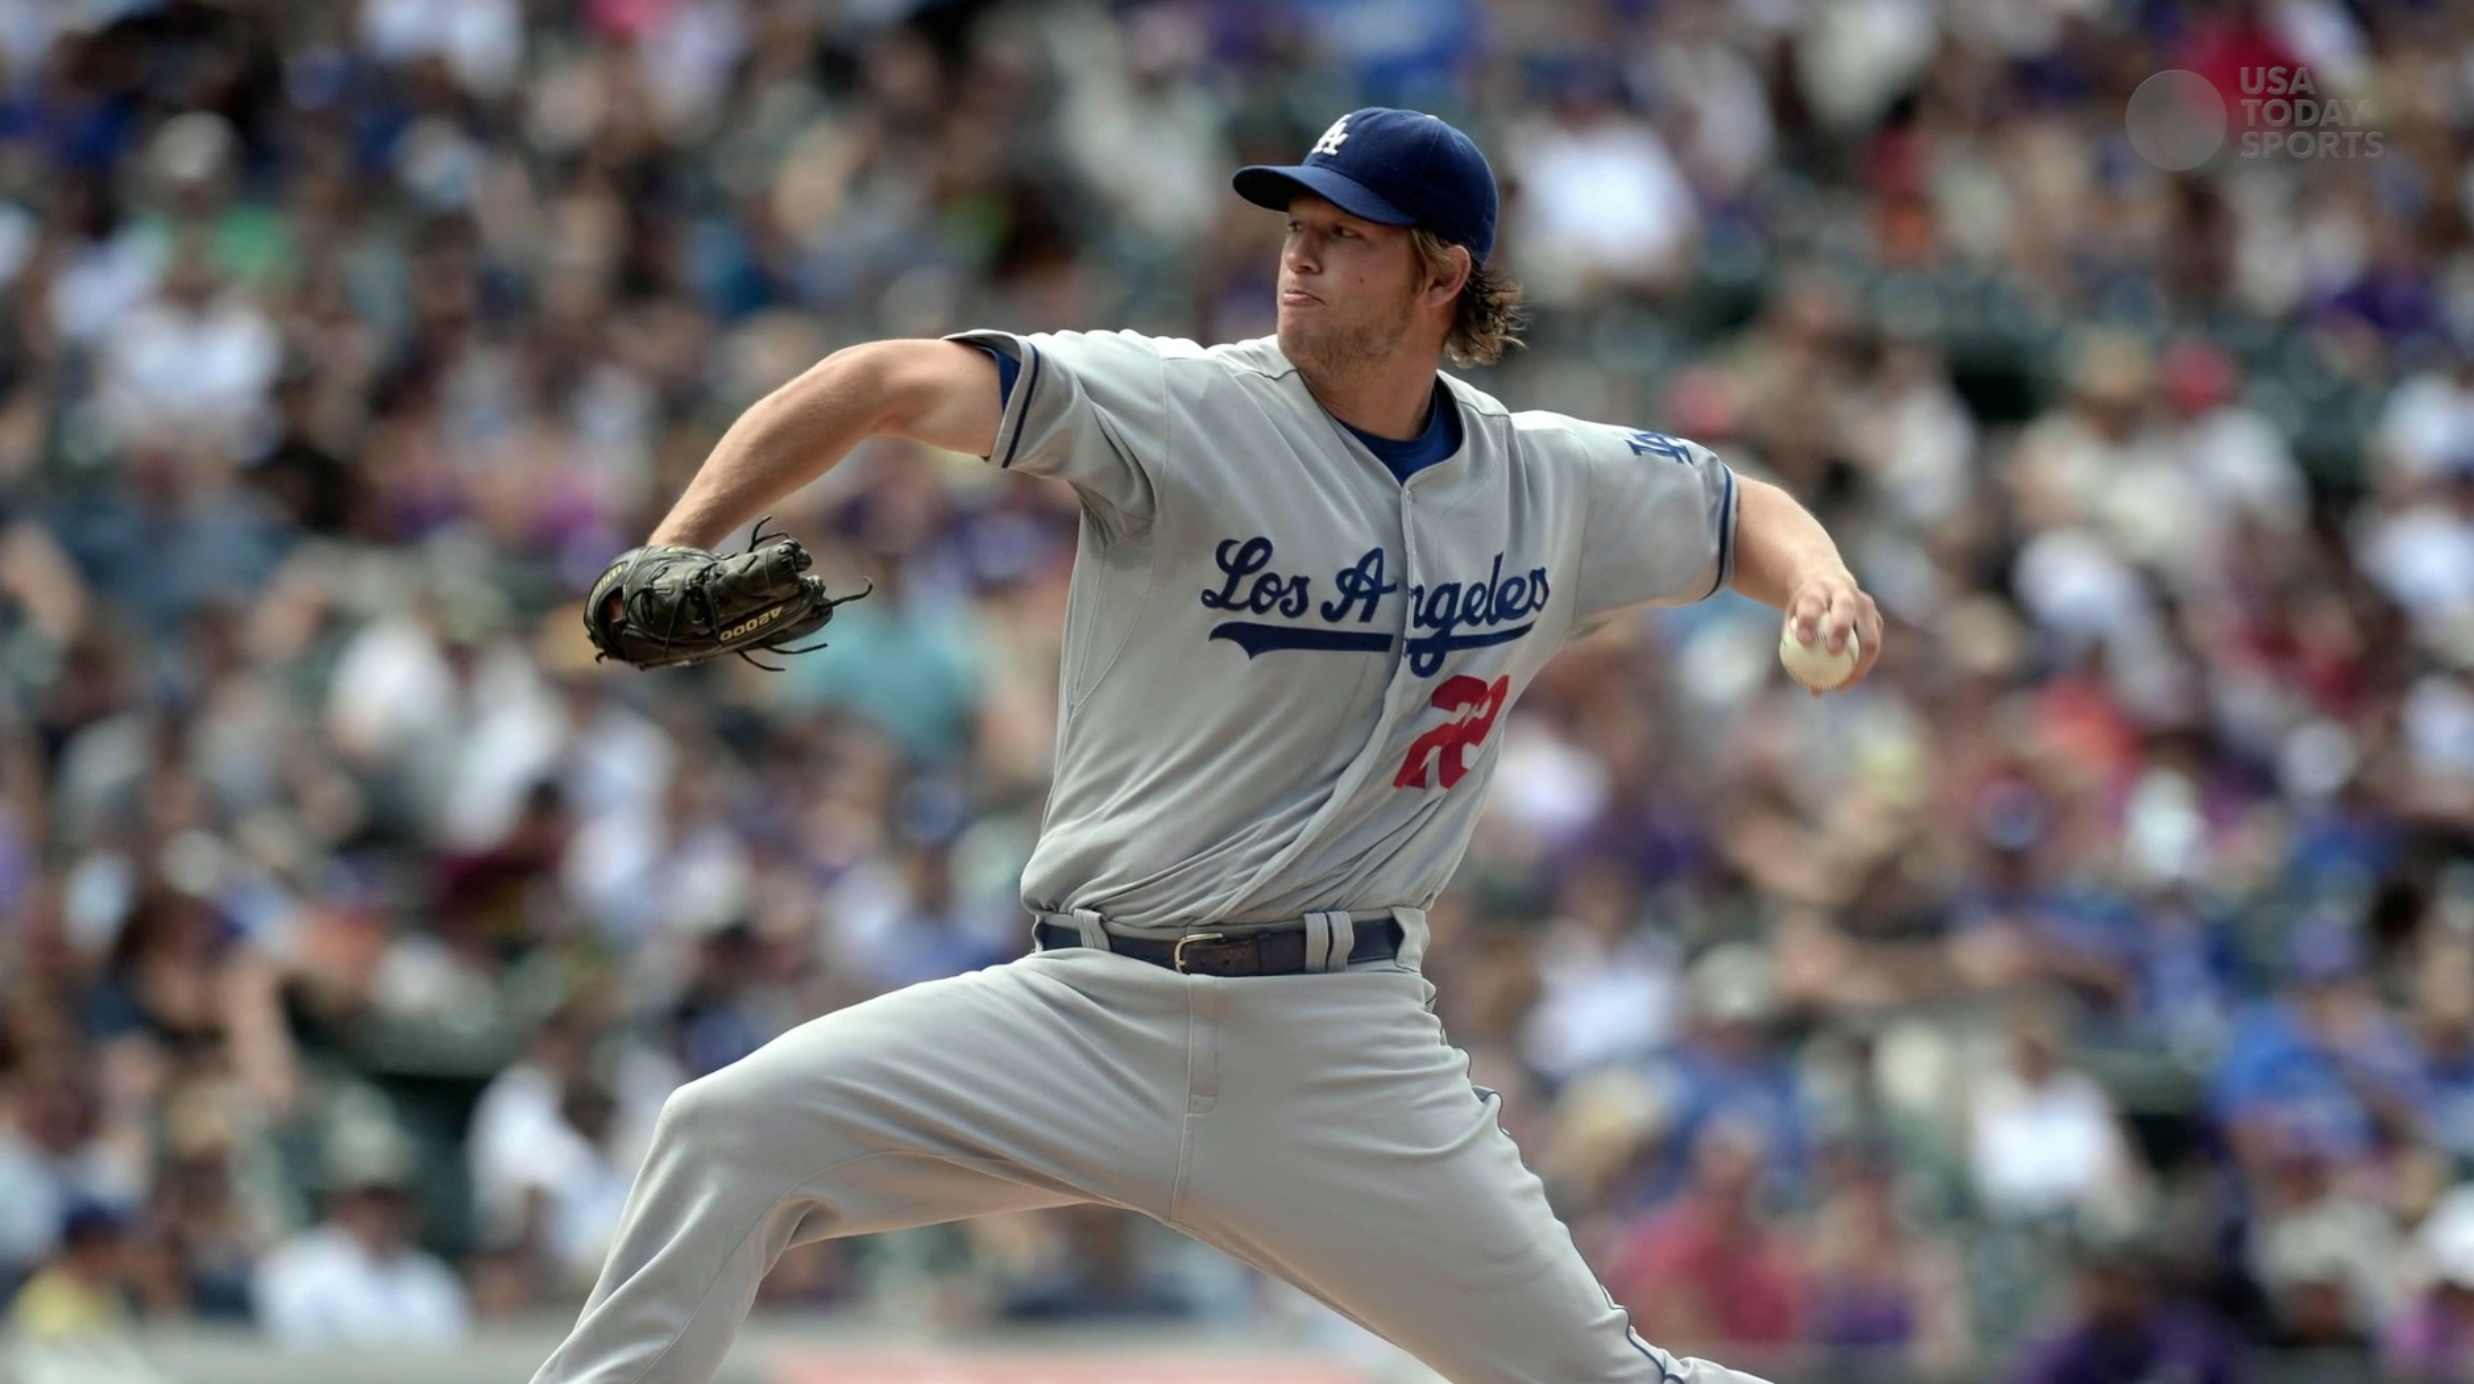 NLDS Preview: Dodgers vs. Braves